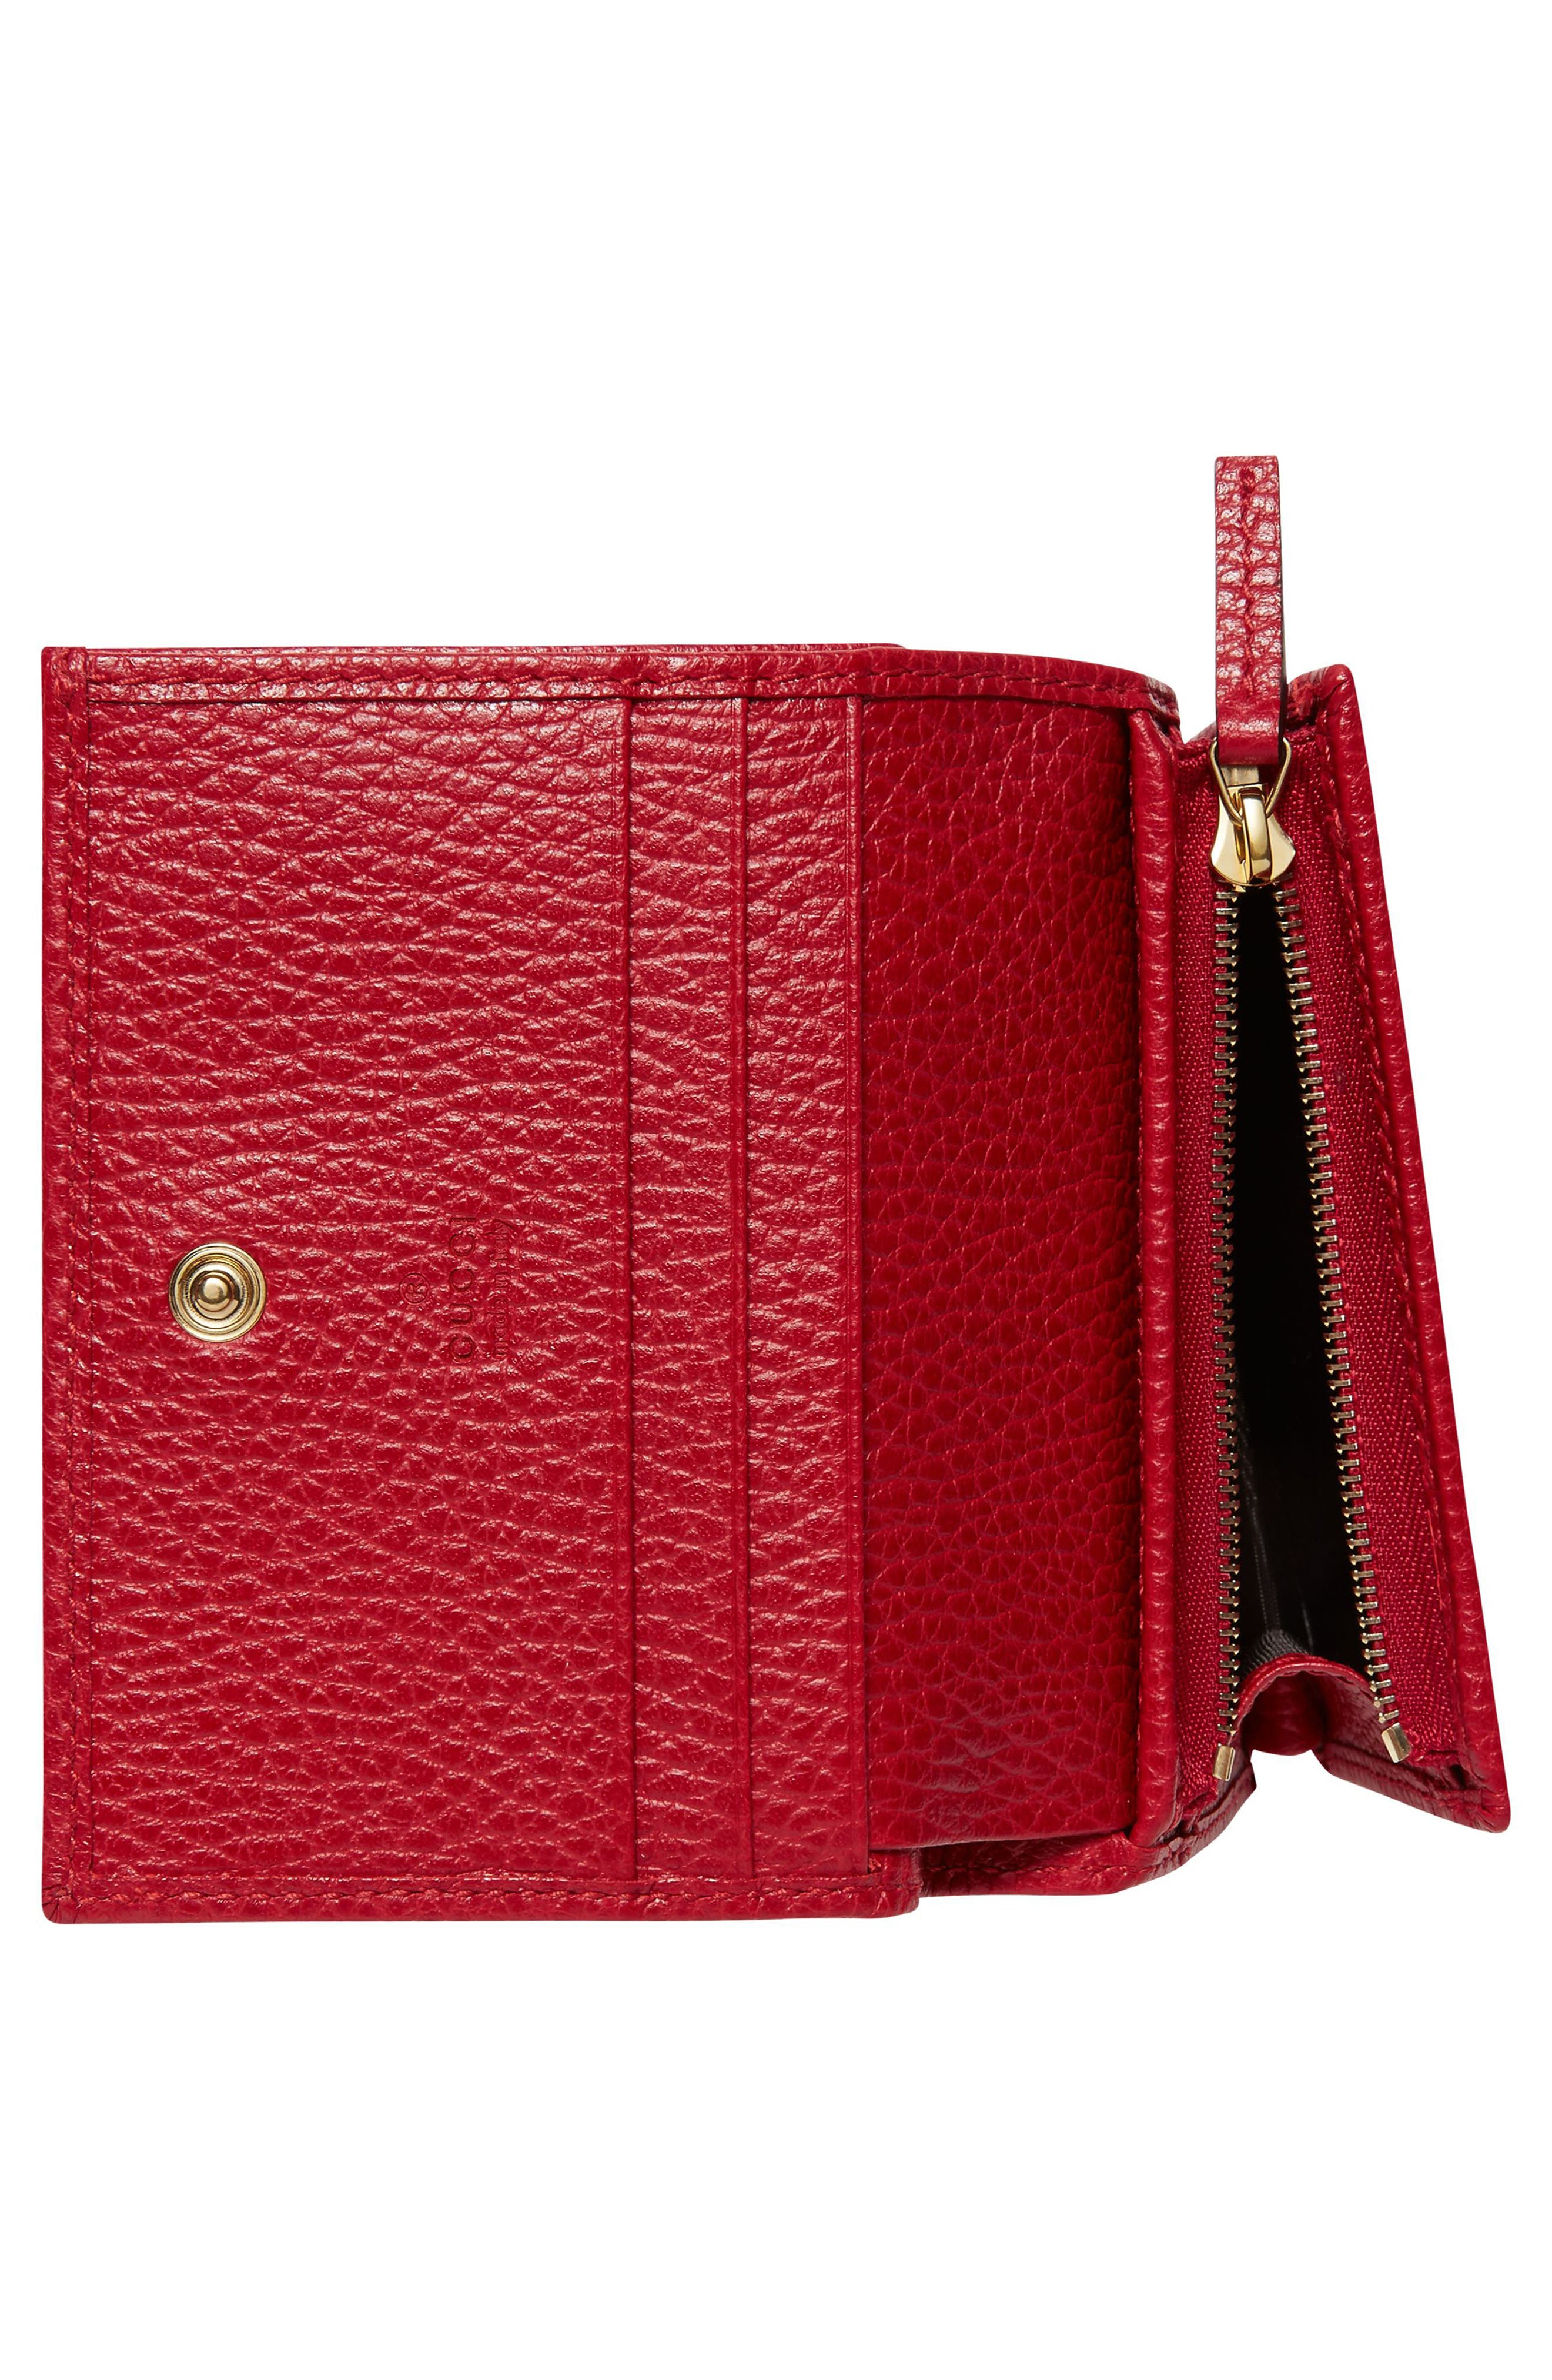 Petite Marmont Leather Card Case,                             Alternate thumbnail 3, color,                             Hibiscus Red